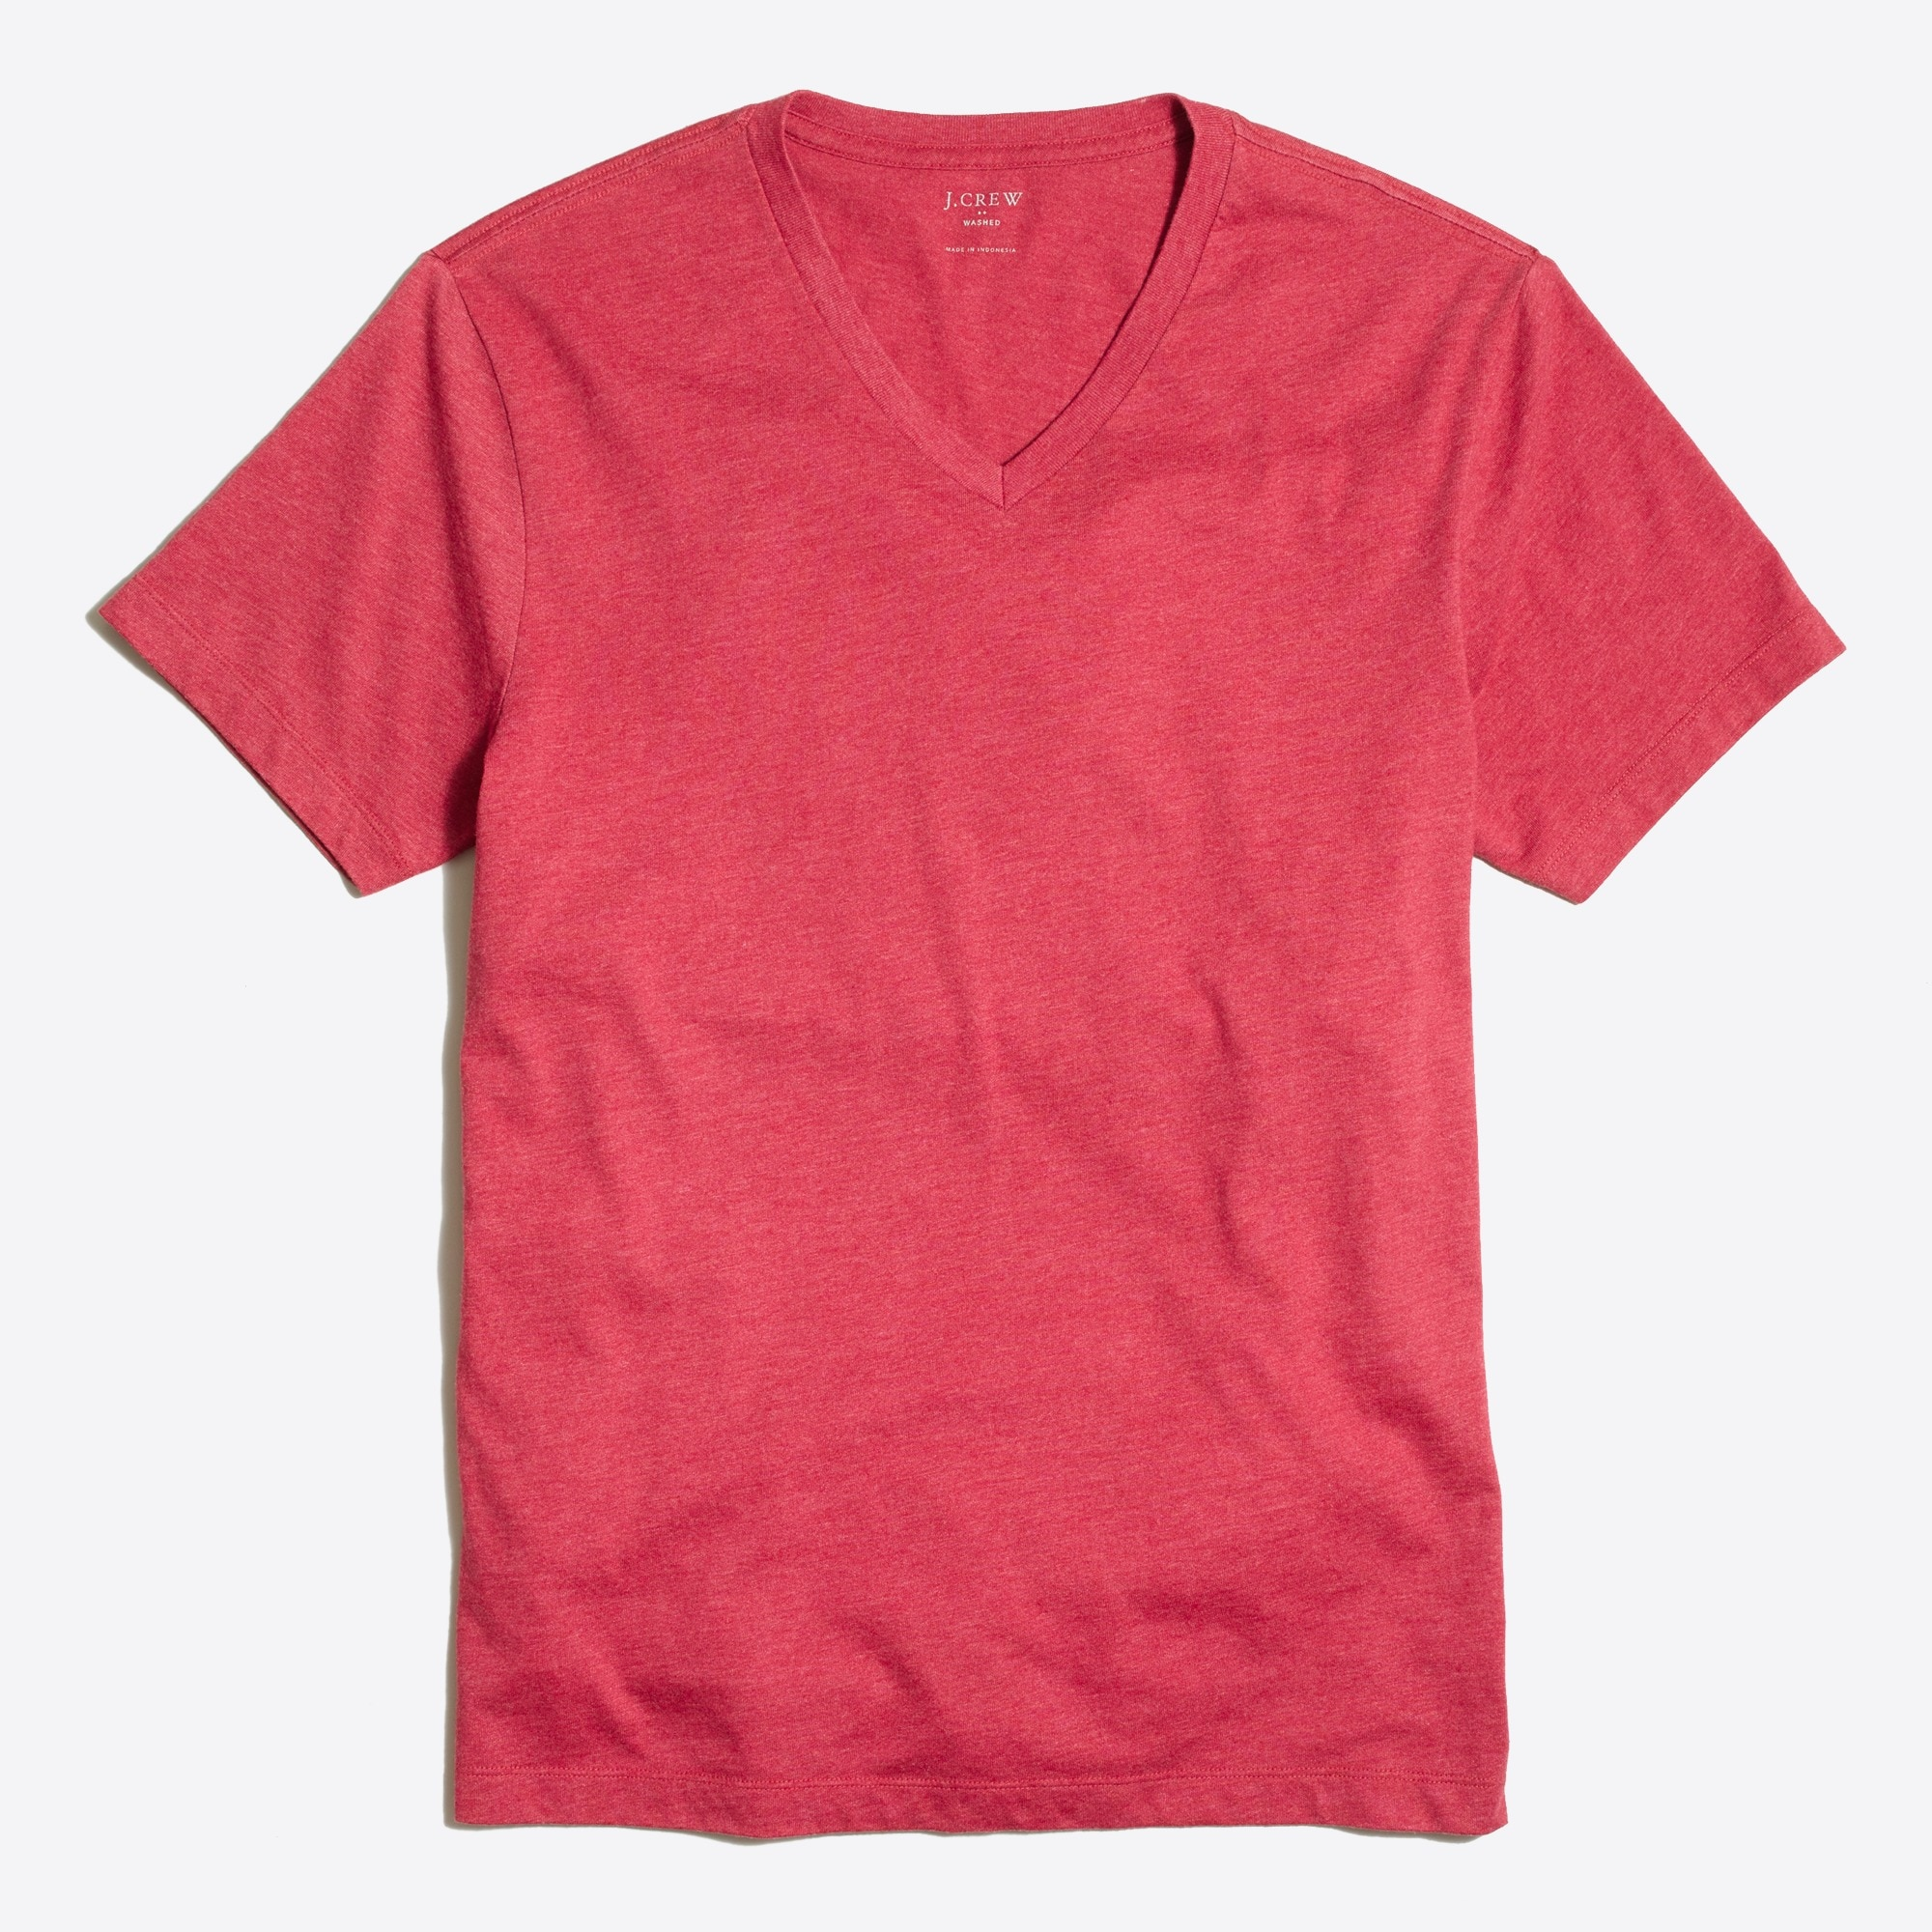 J.Crew Mercantile heathered Broken-in V-neck T-shirt